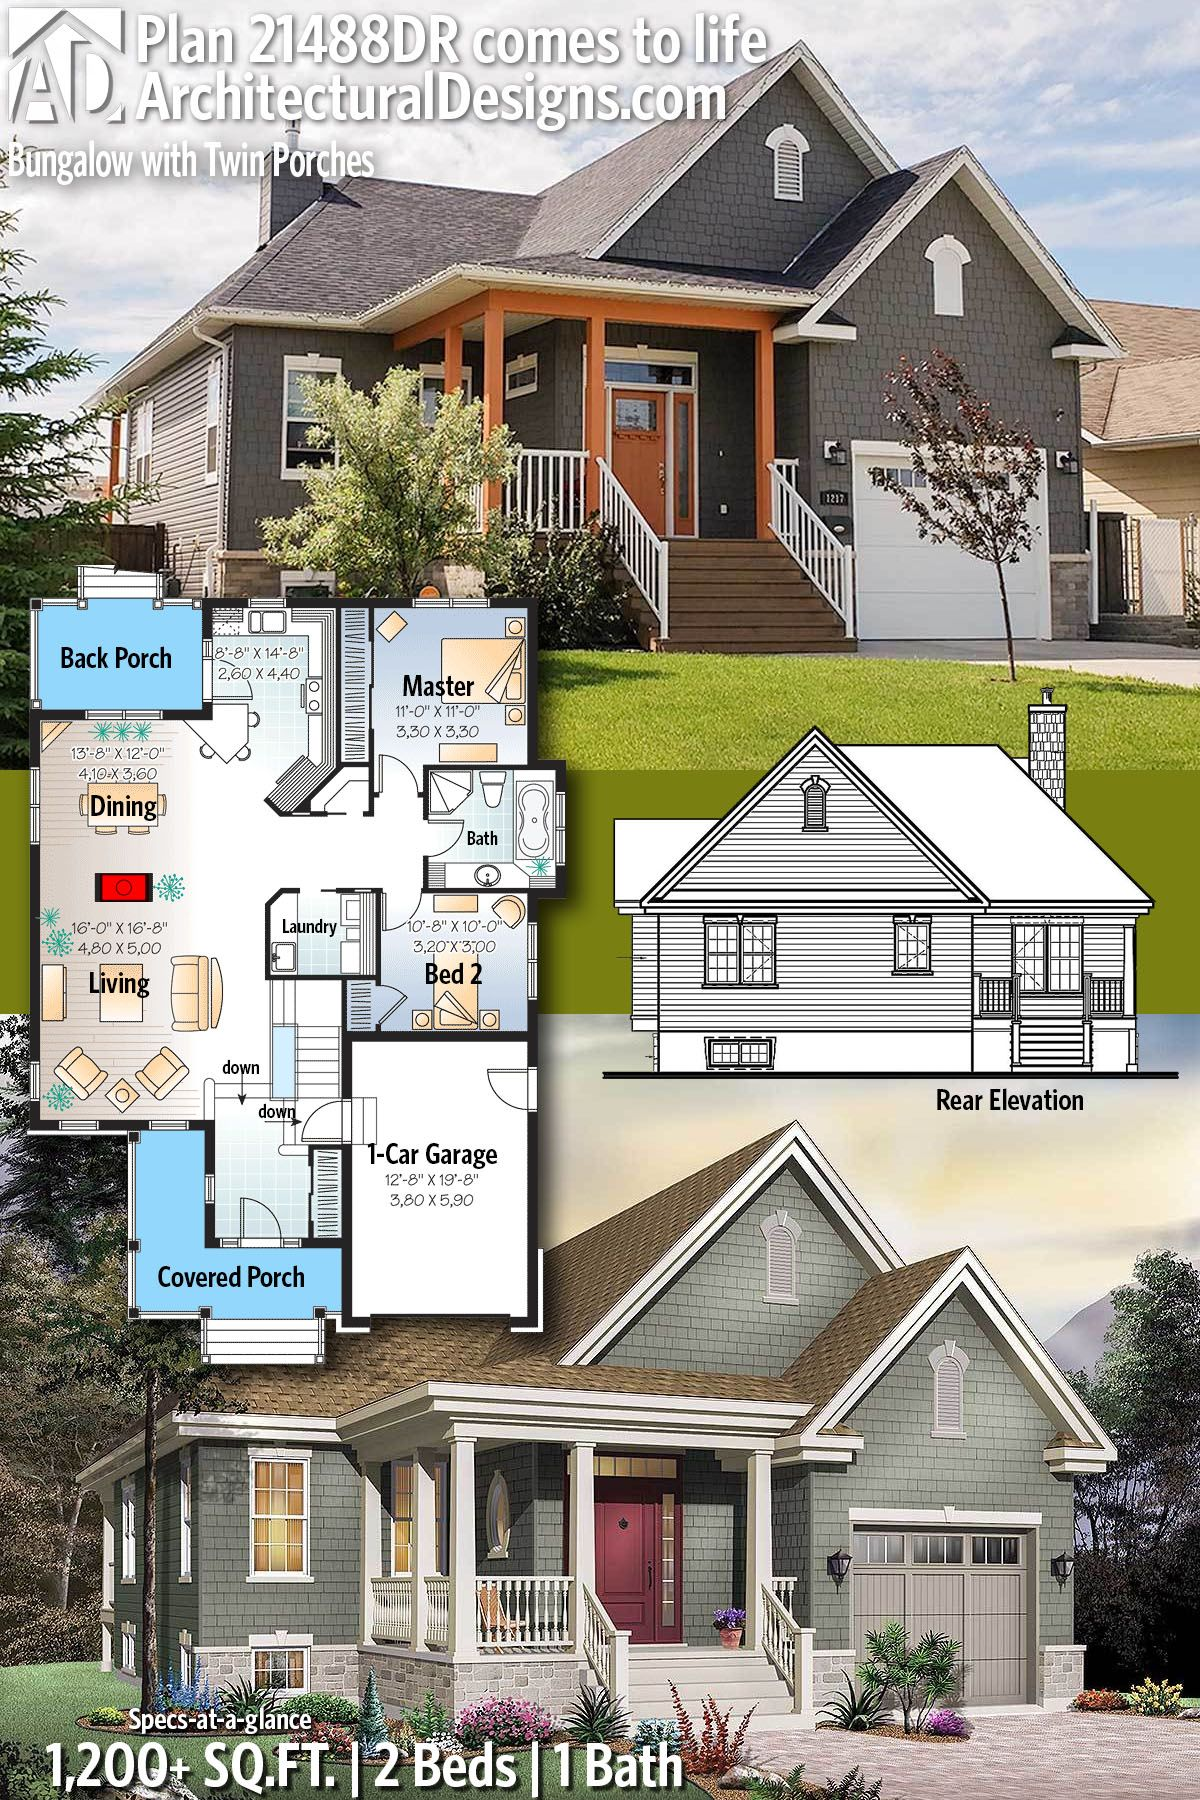 Architectural designs house plan dr comes to life beds